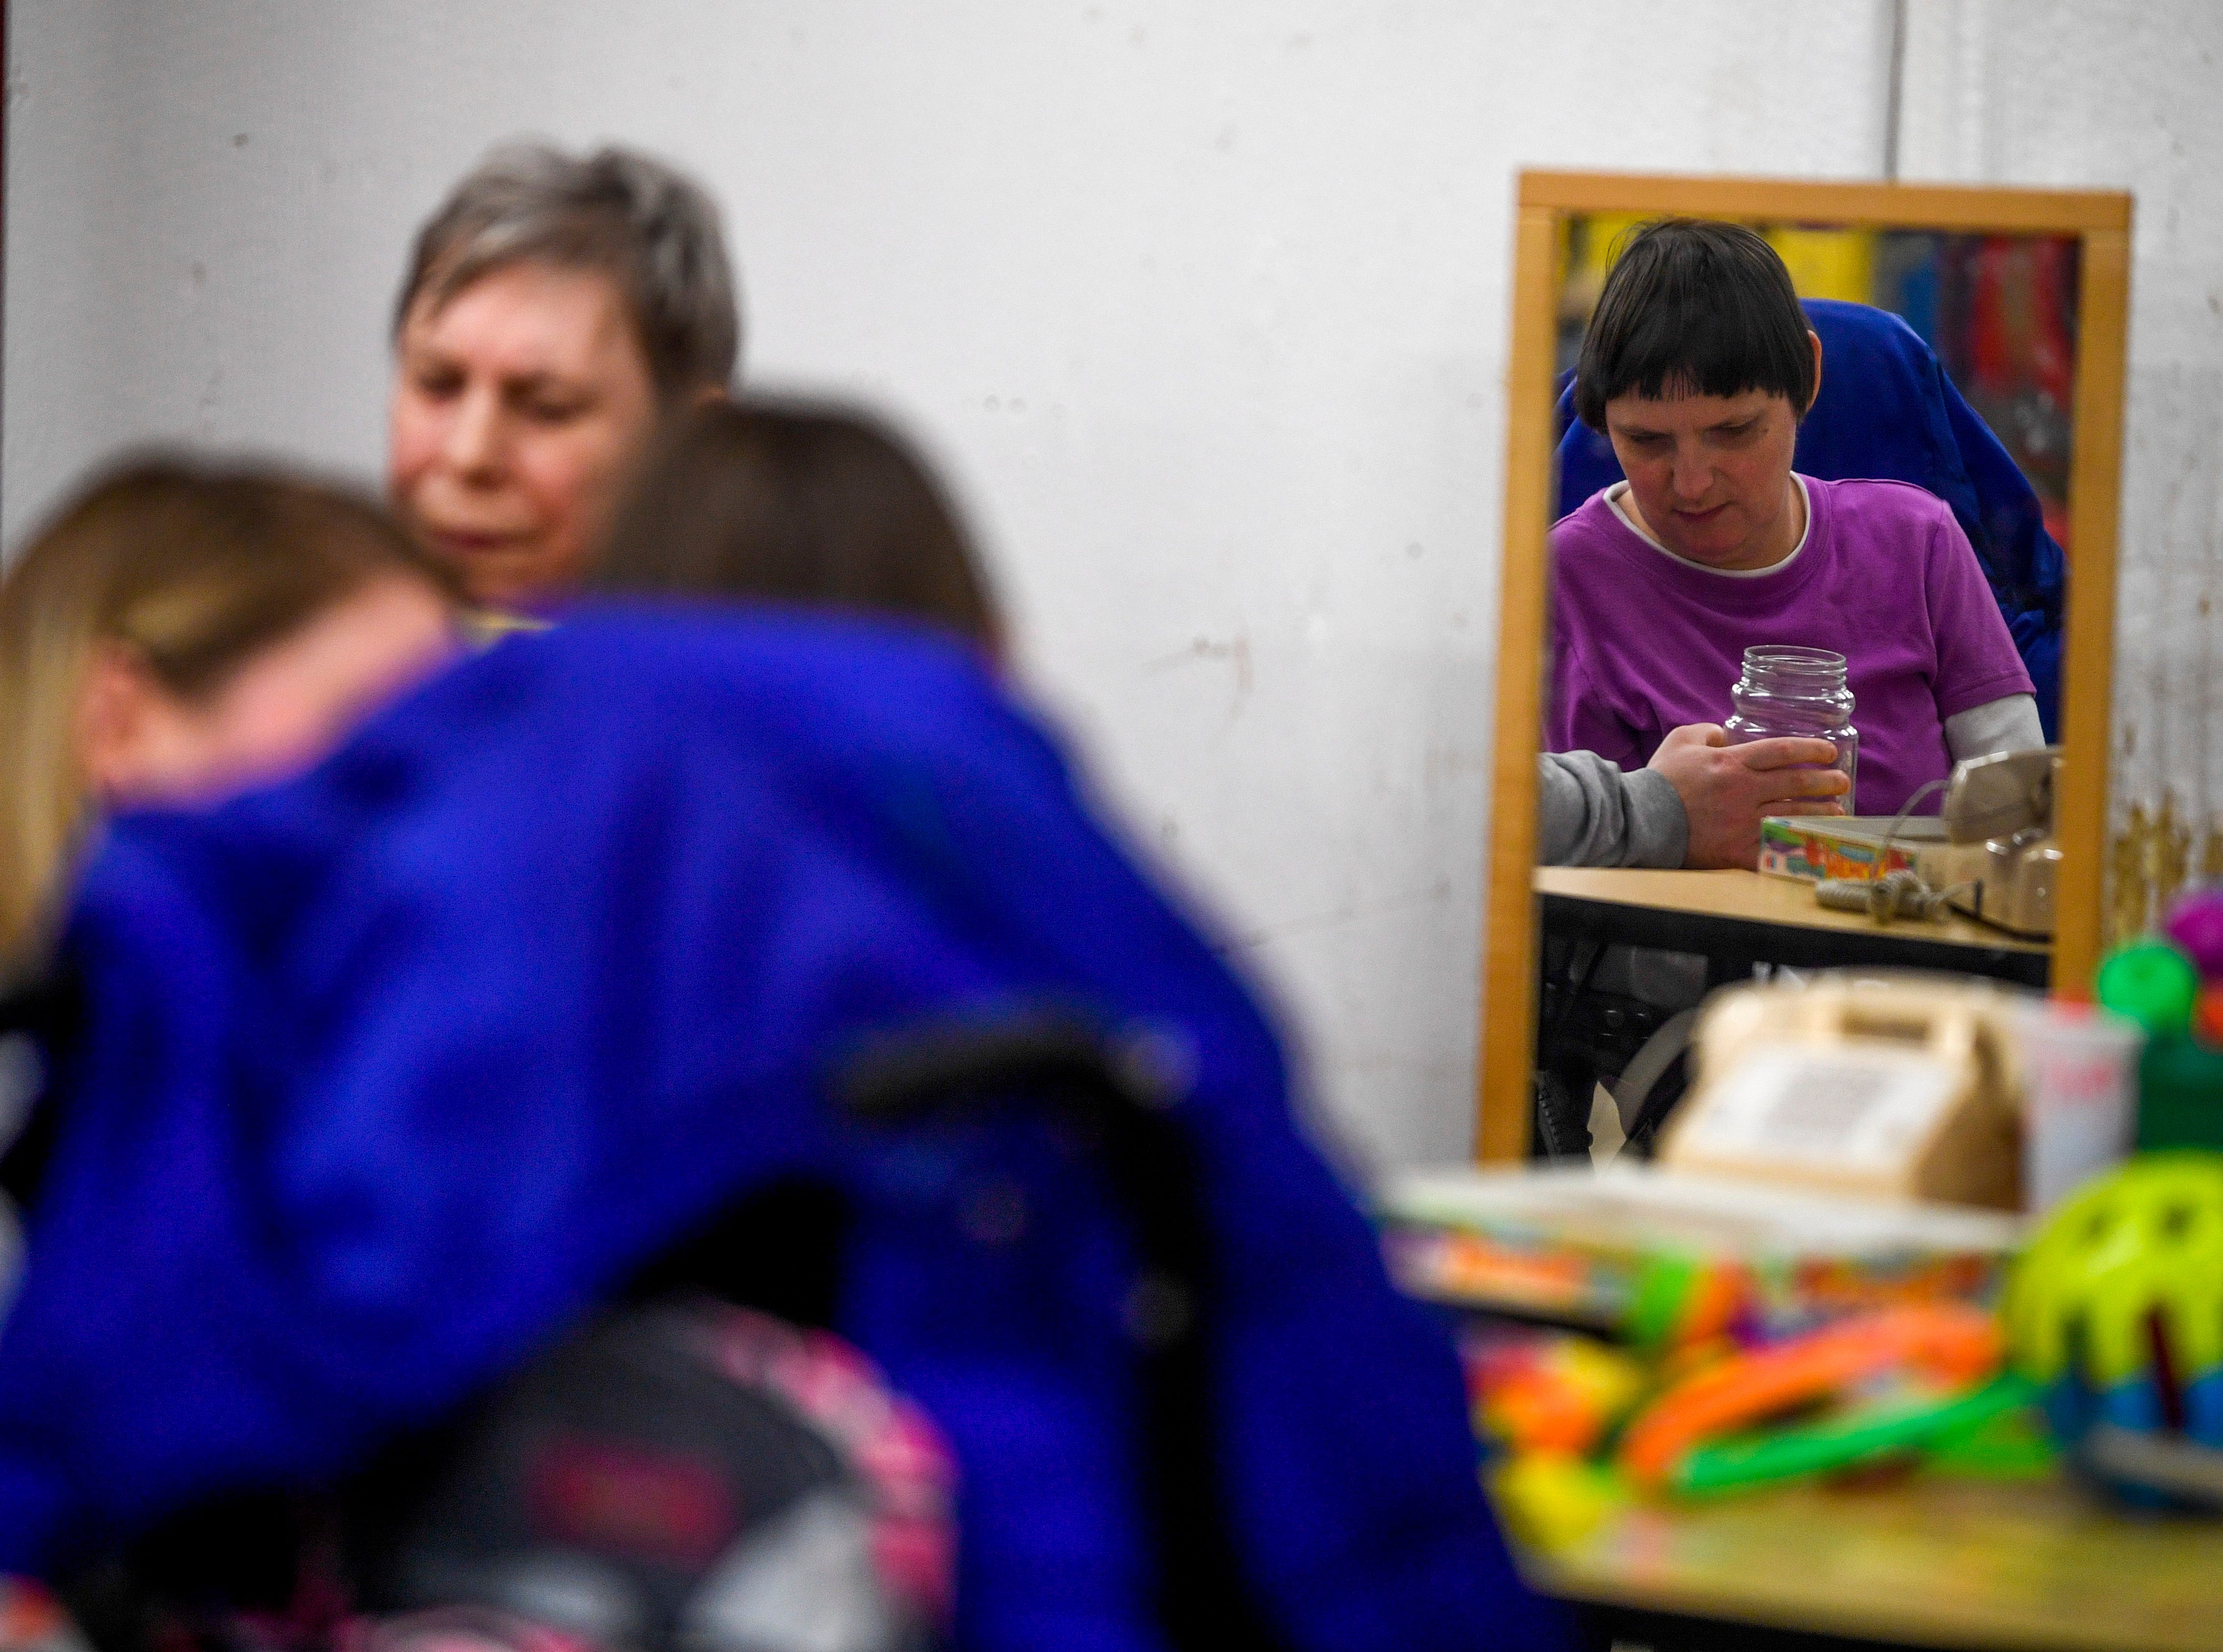 Angie Kyle takes lessons and listens to a teacher during classes at McNairy Developmental Services in Selmer, Tenn., on Thursday, Feb. 21, 2019.